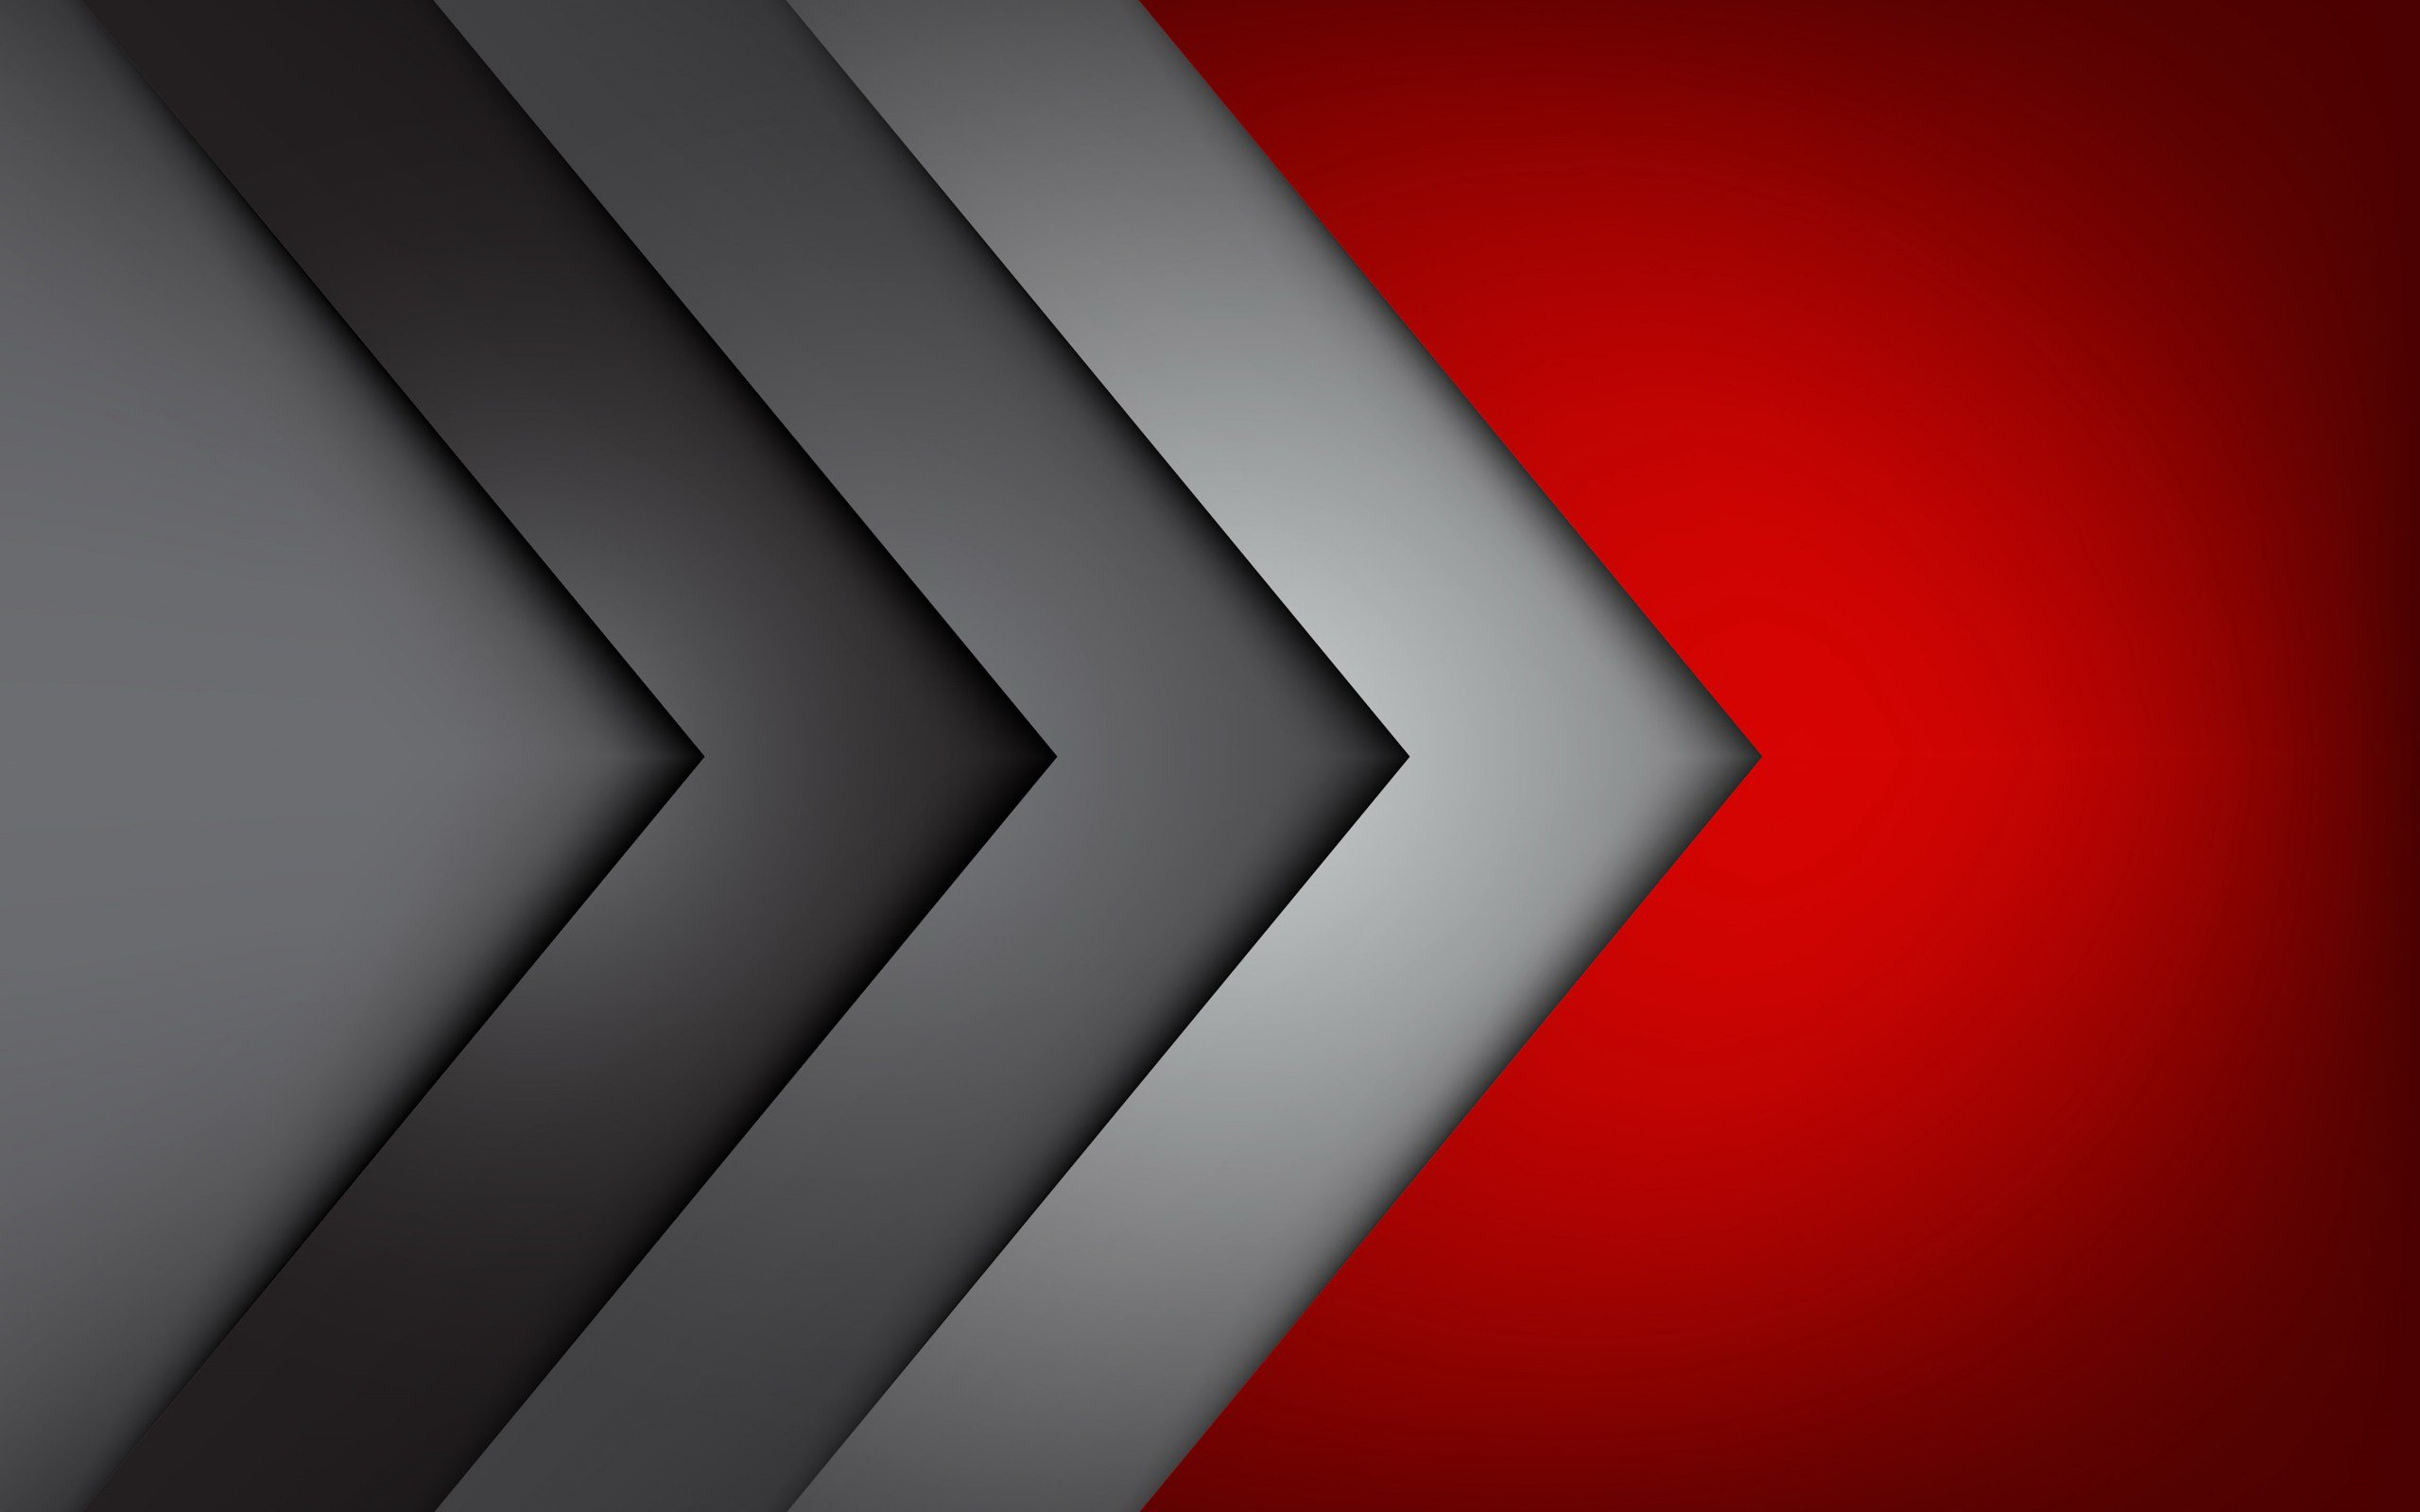 Red Black Grey Wallpaper Wallpapersafari